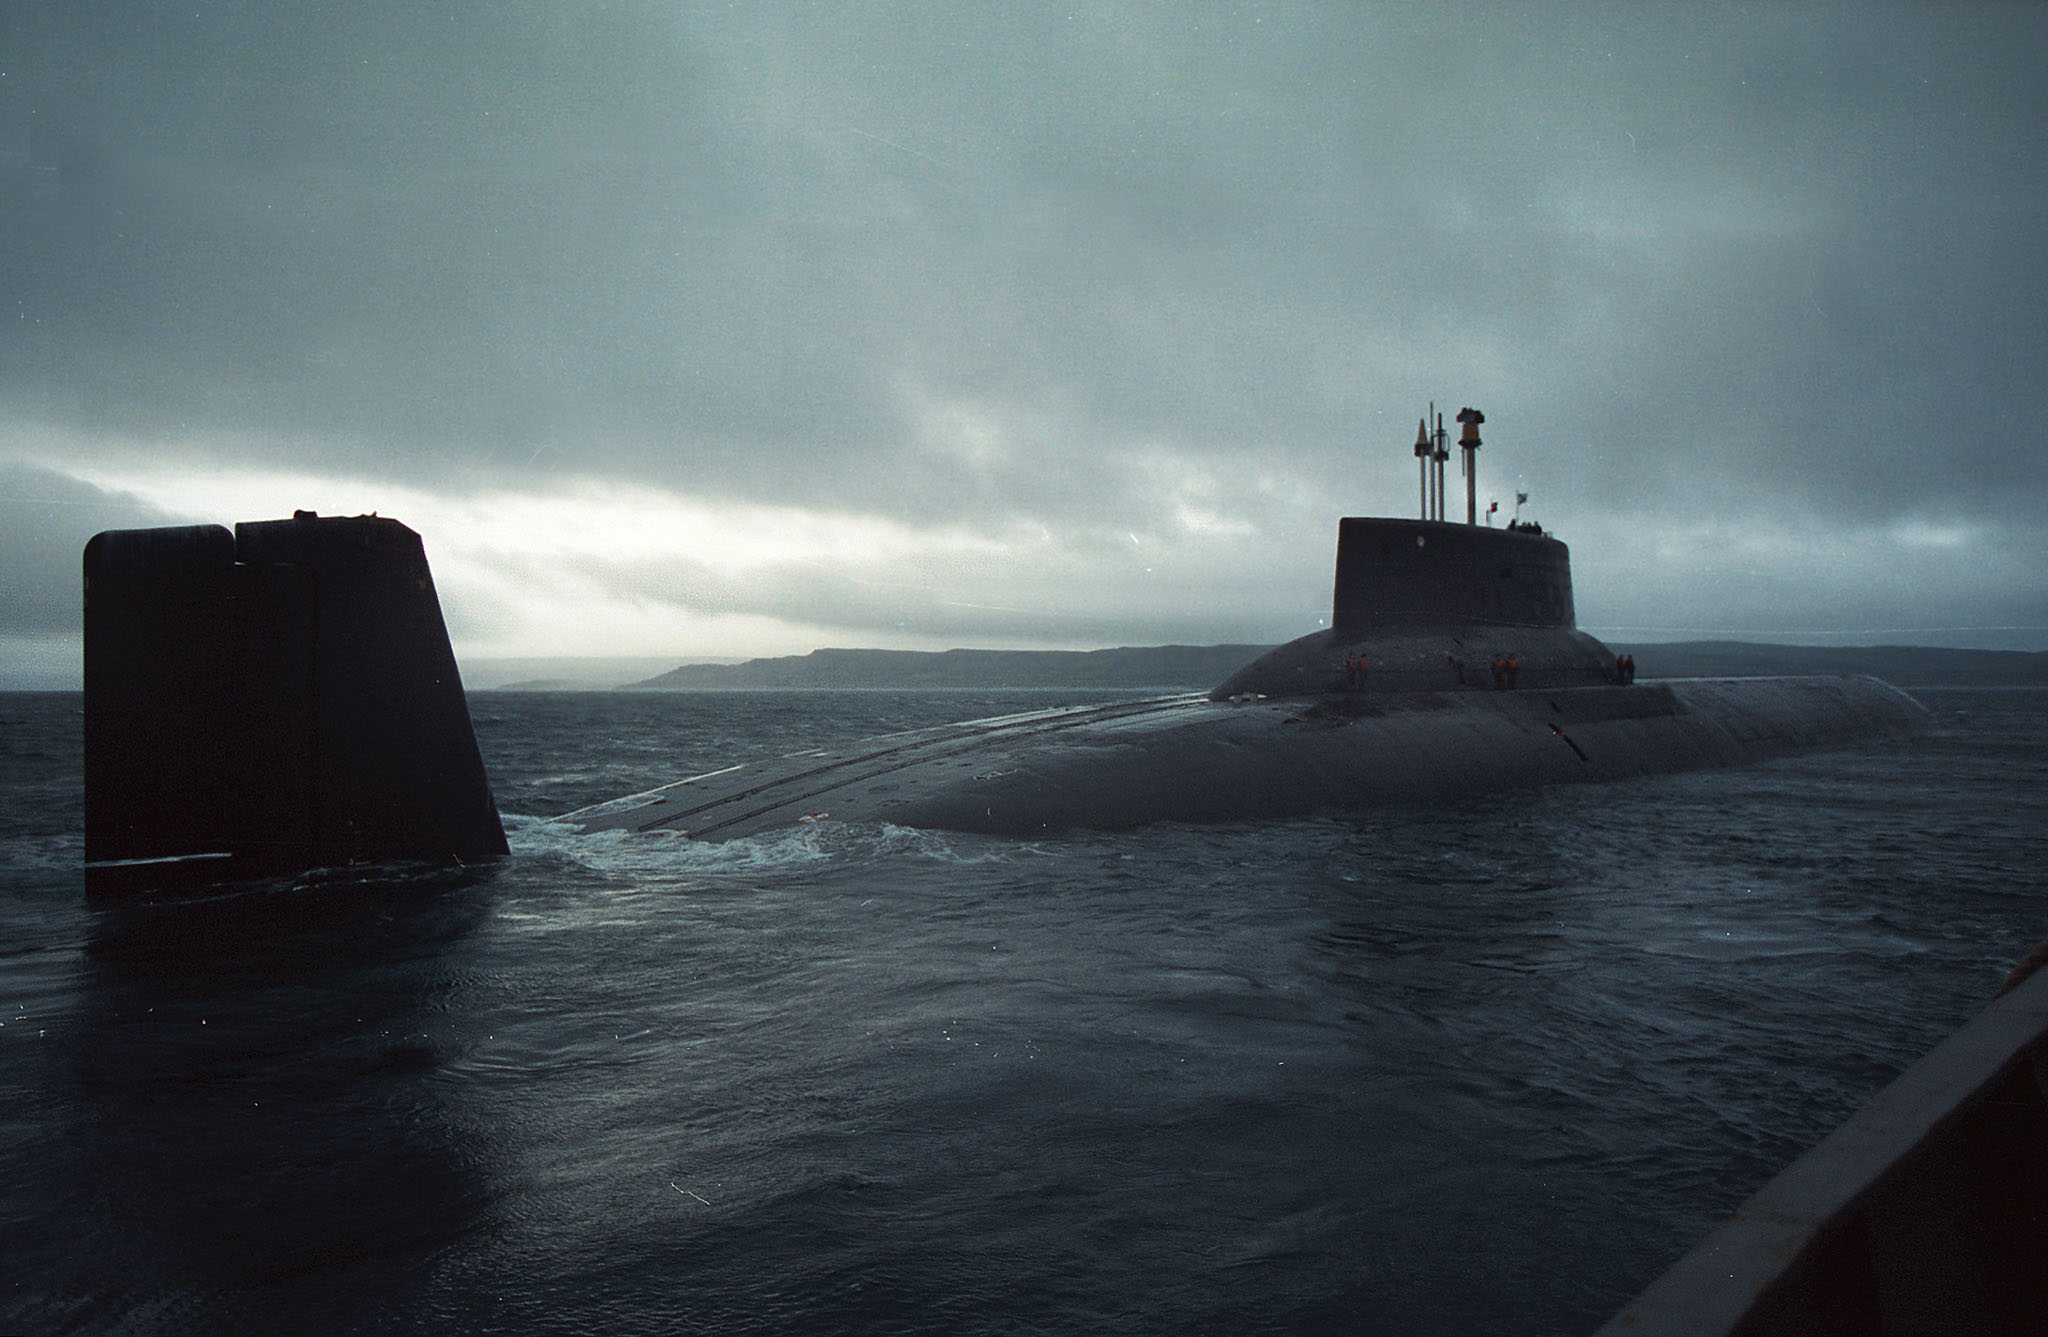 project 941 akula/typhoon class - this picture reminds me of